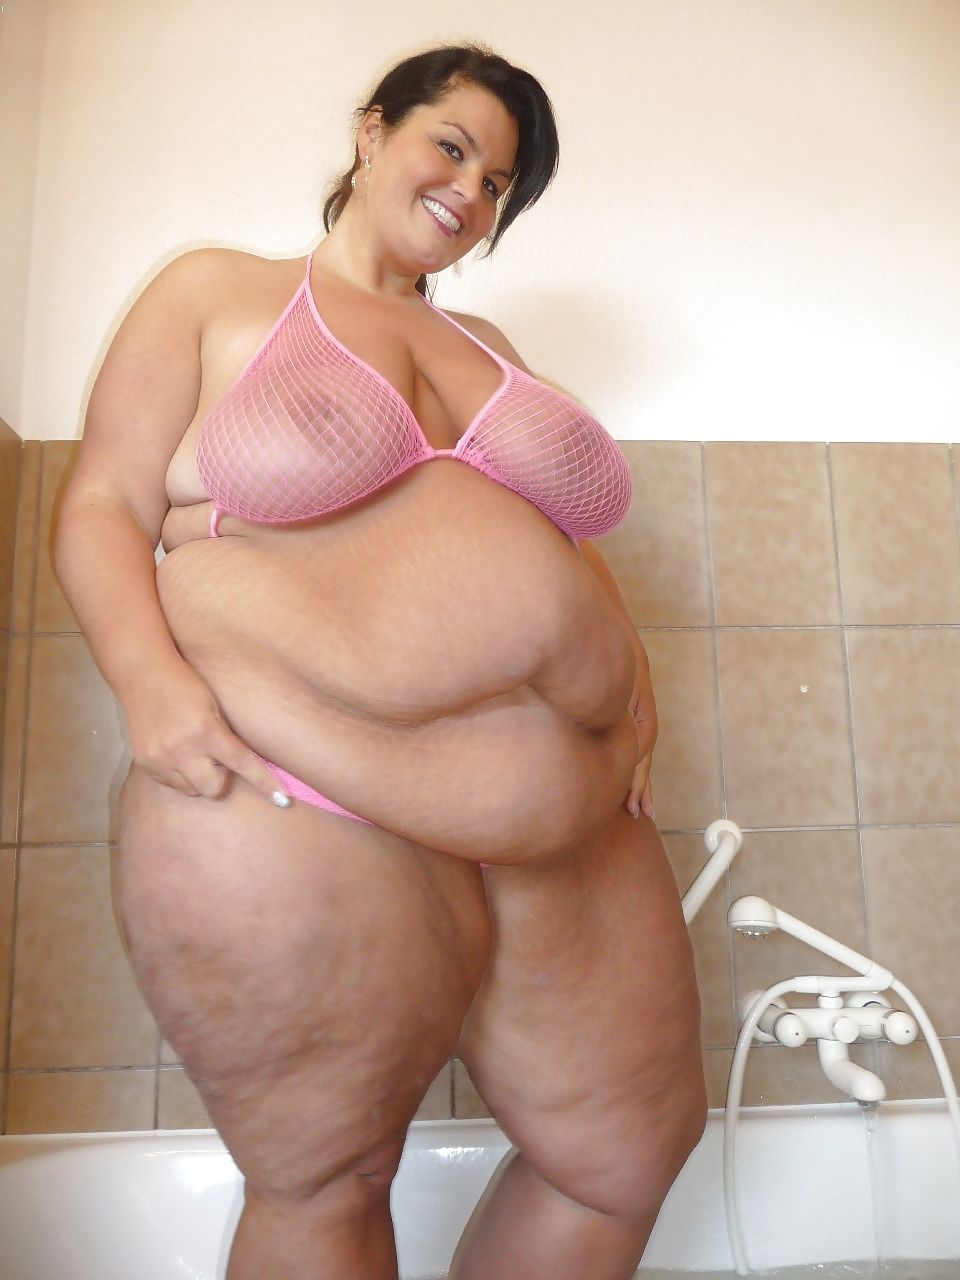 Ssbbw bath time